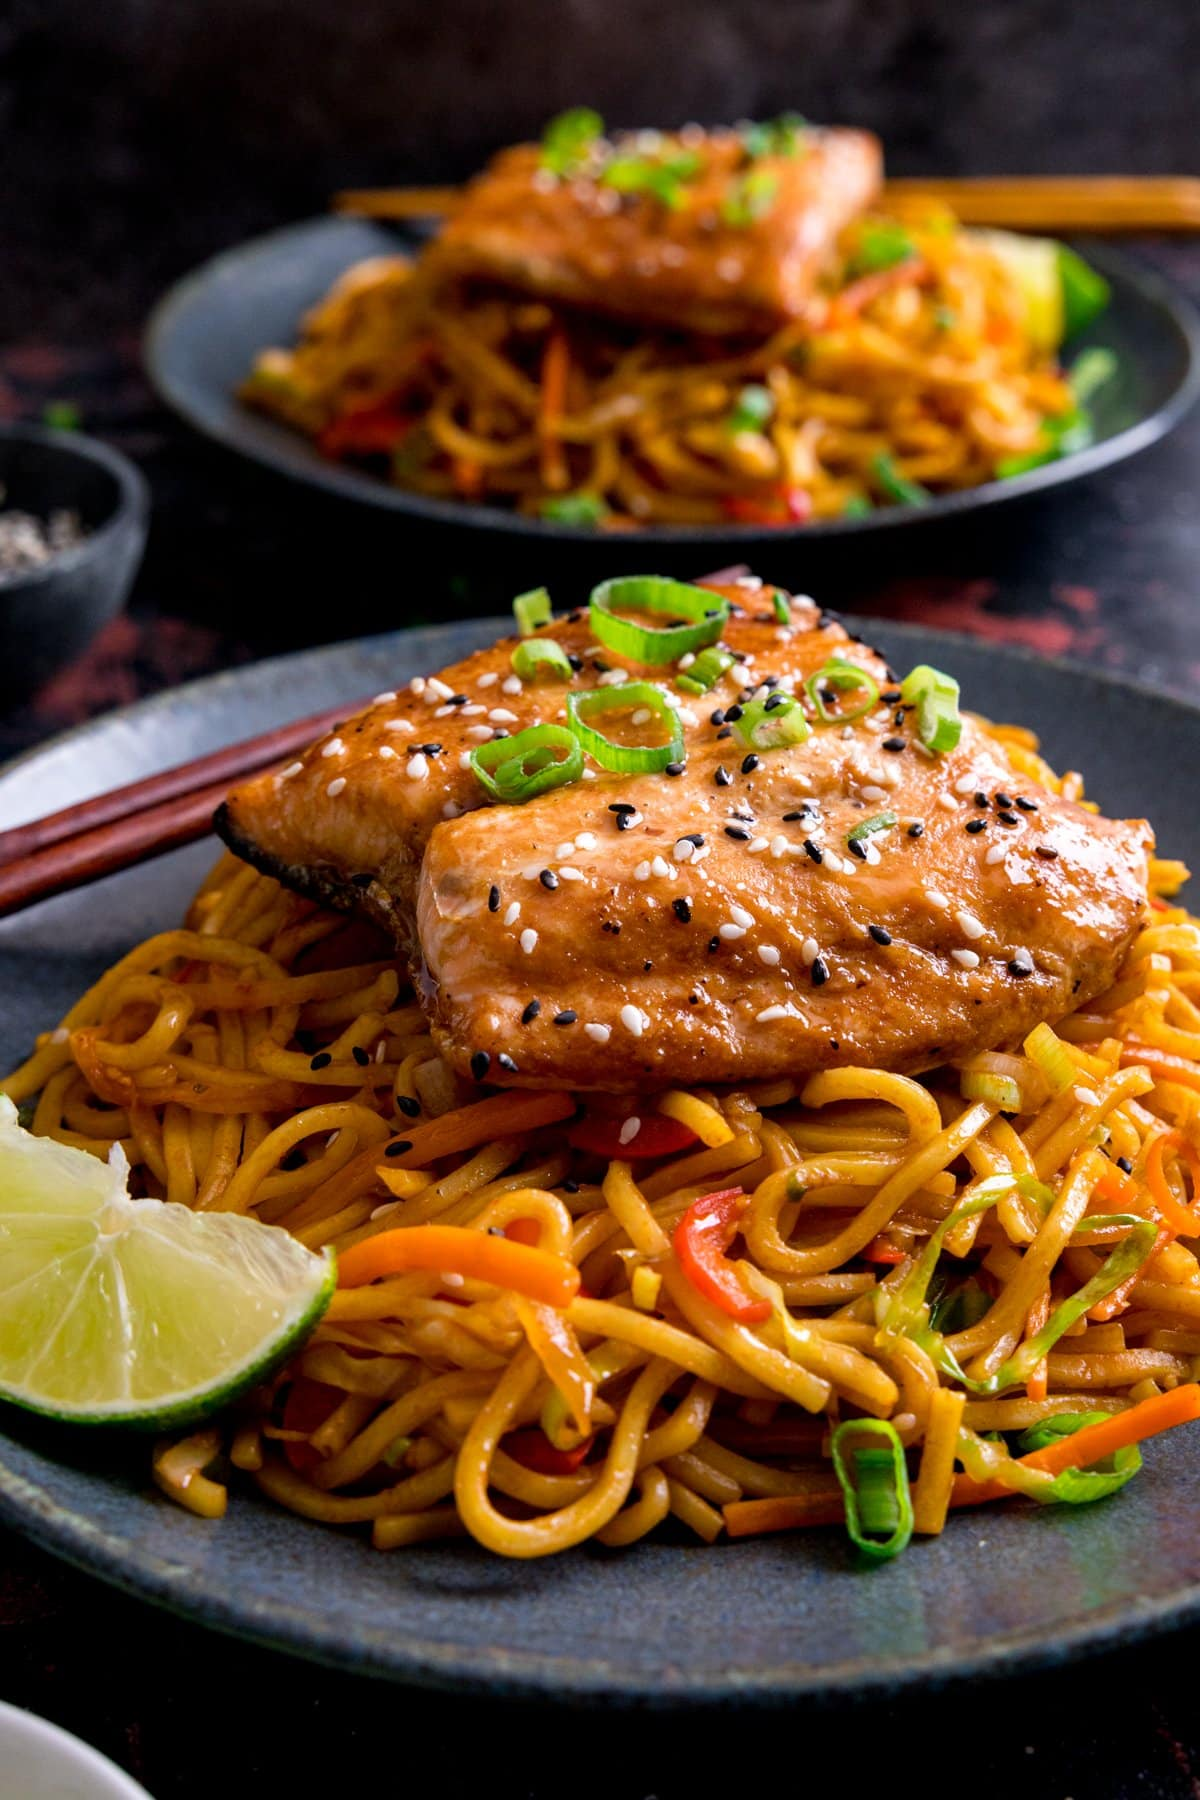 Asian salmon topped with spring onions on a bed of stir-fried noodles on a blue plate. Further plate with salmon and noodles in the background.